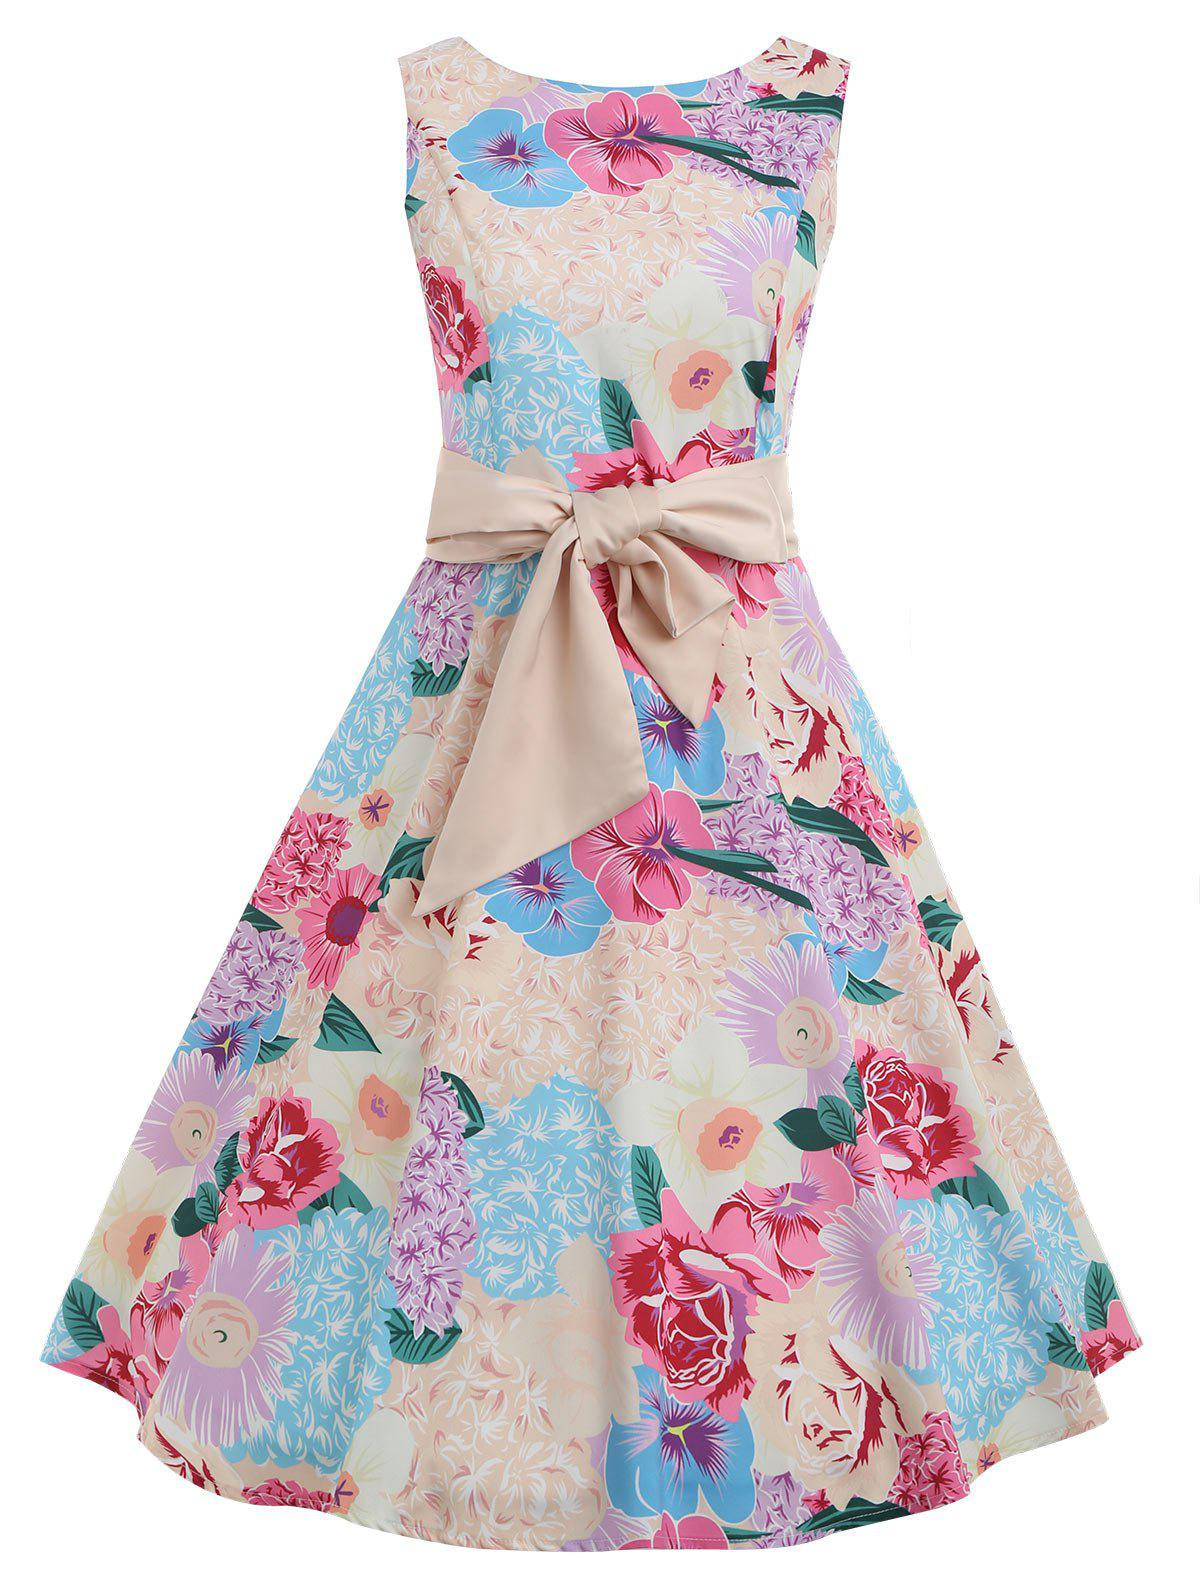 Online Vintage Floral Print Sleeveless A Line Dress